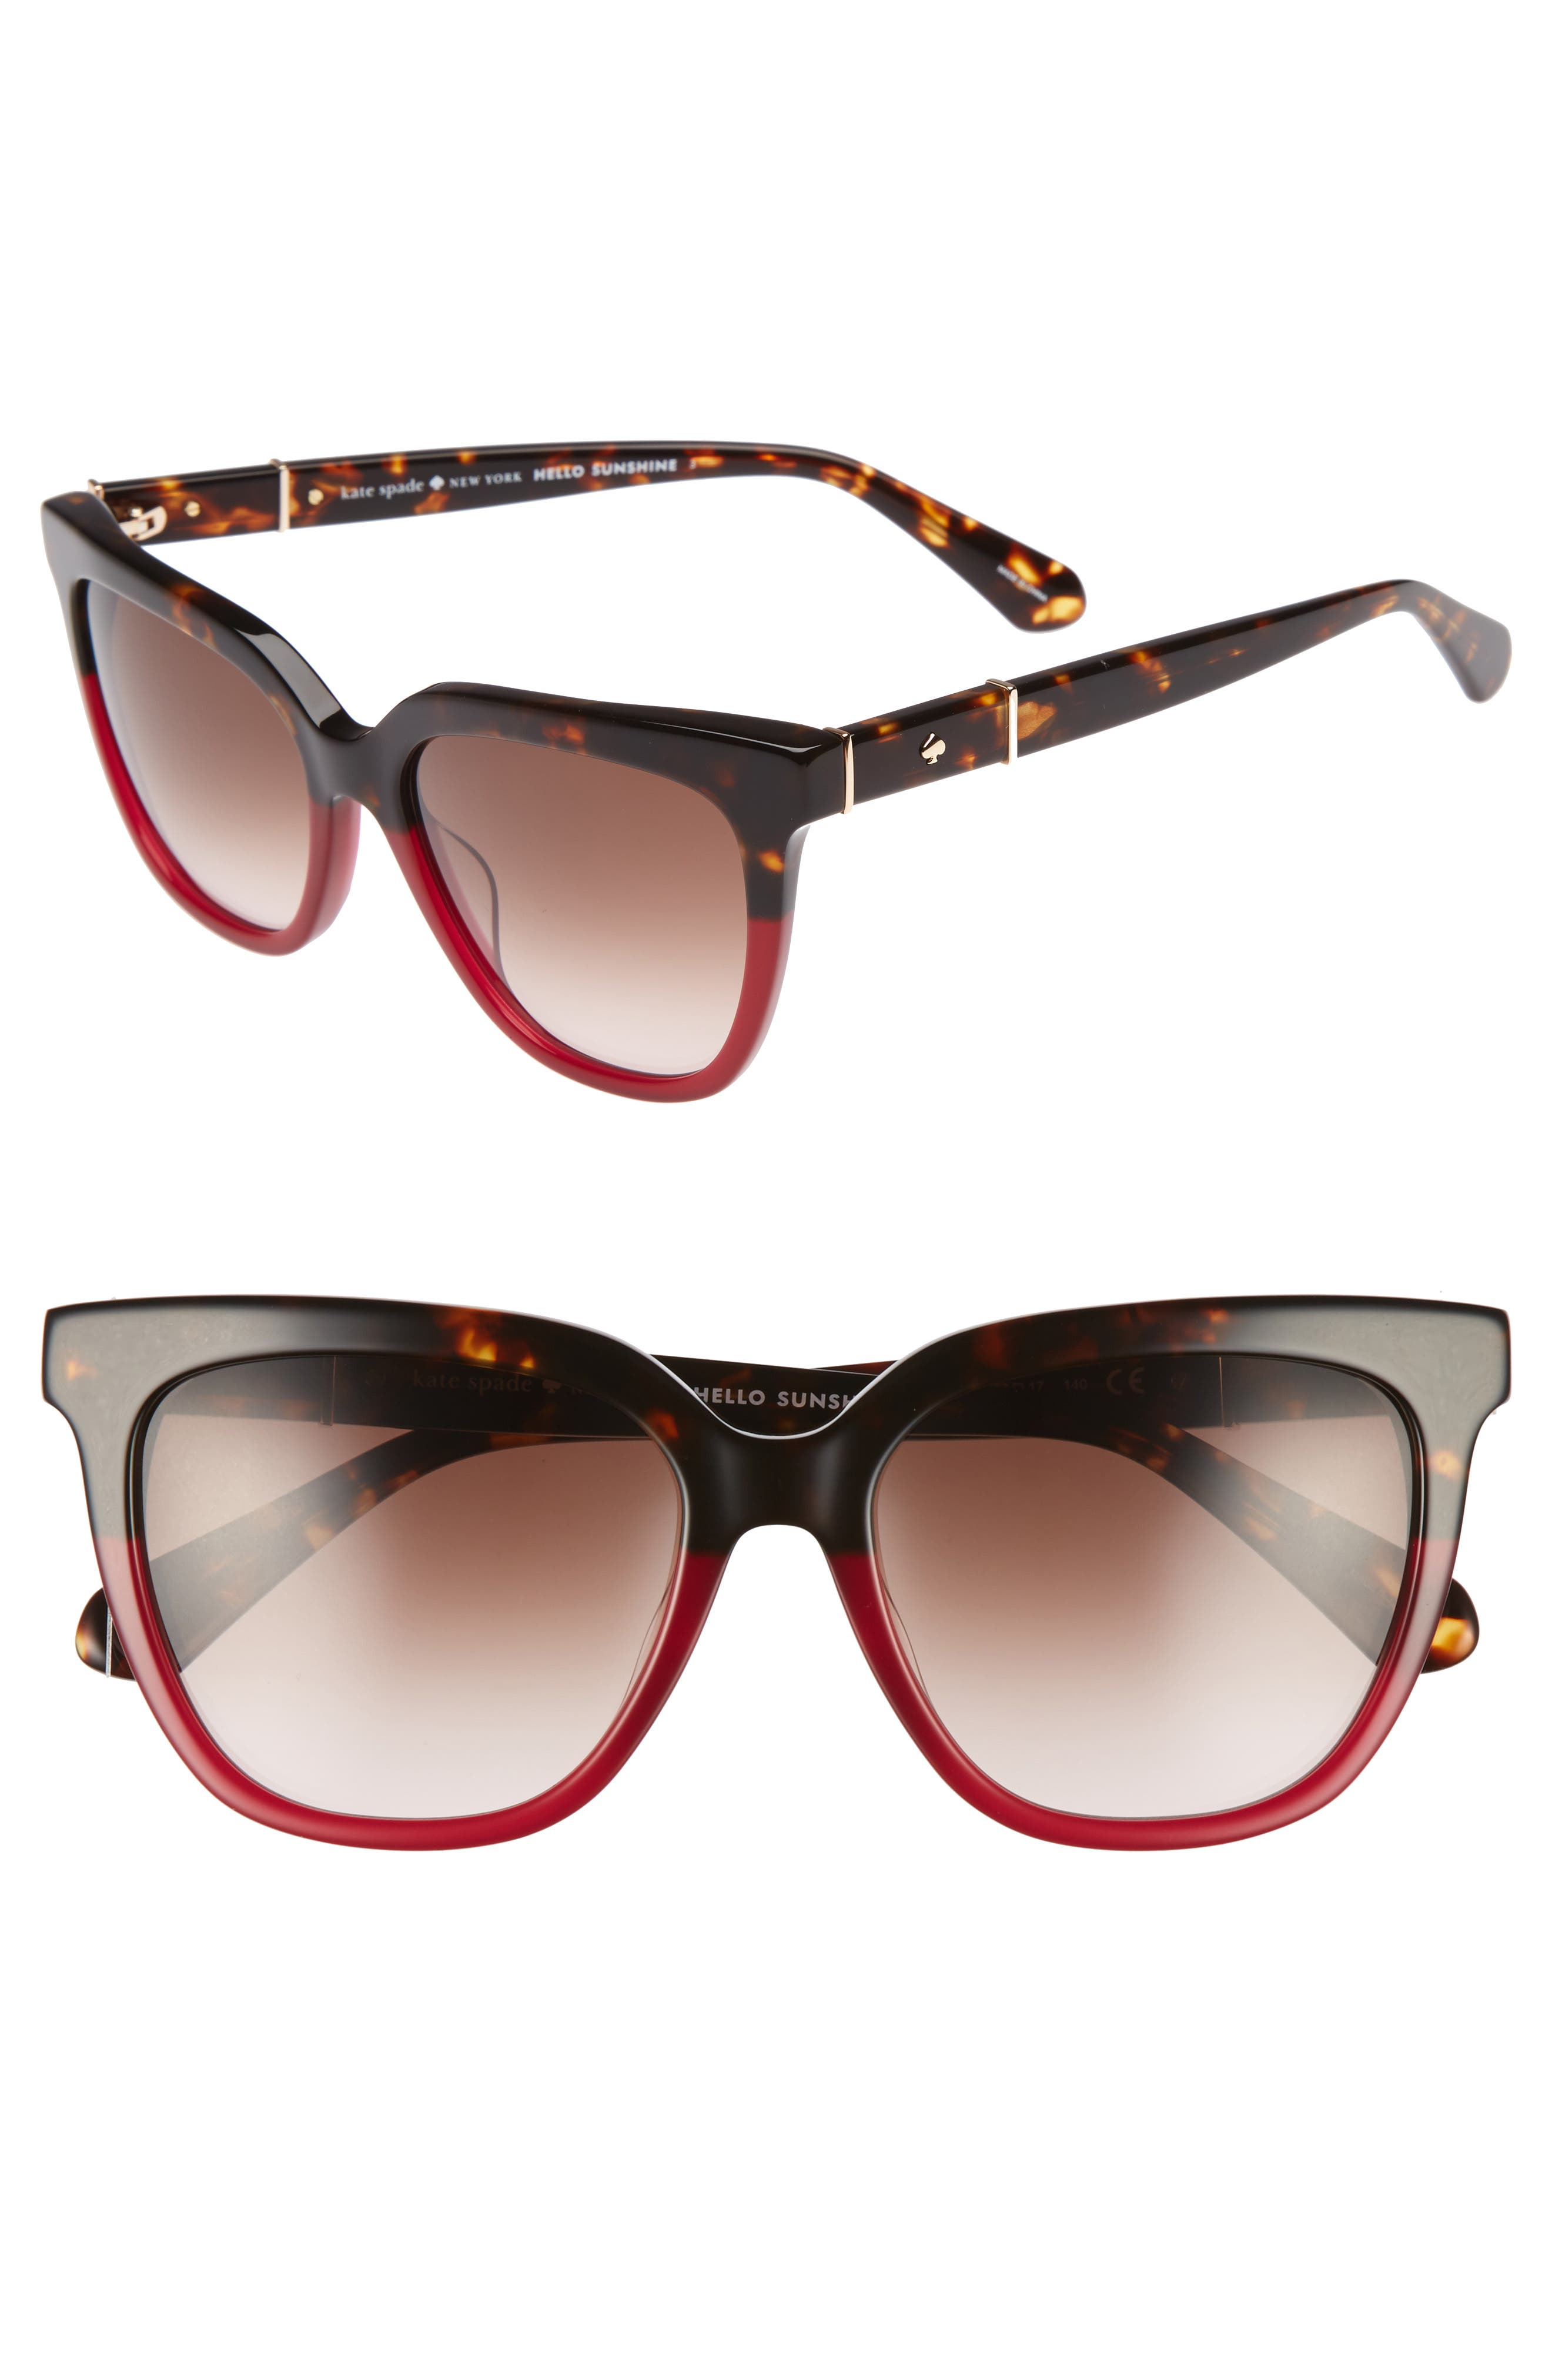 Main Image - kate spade new york kahli 53mm cat eye sunglasses